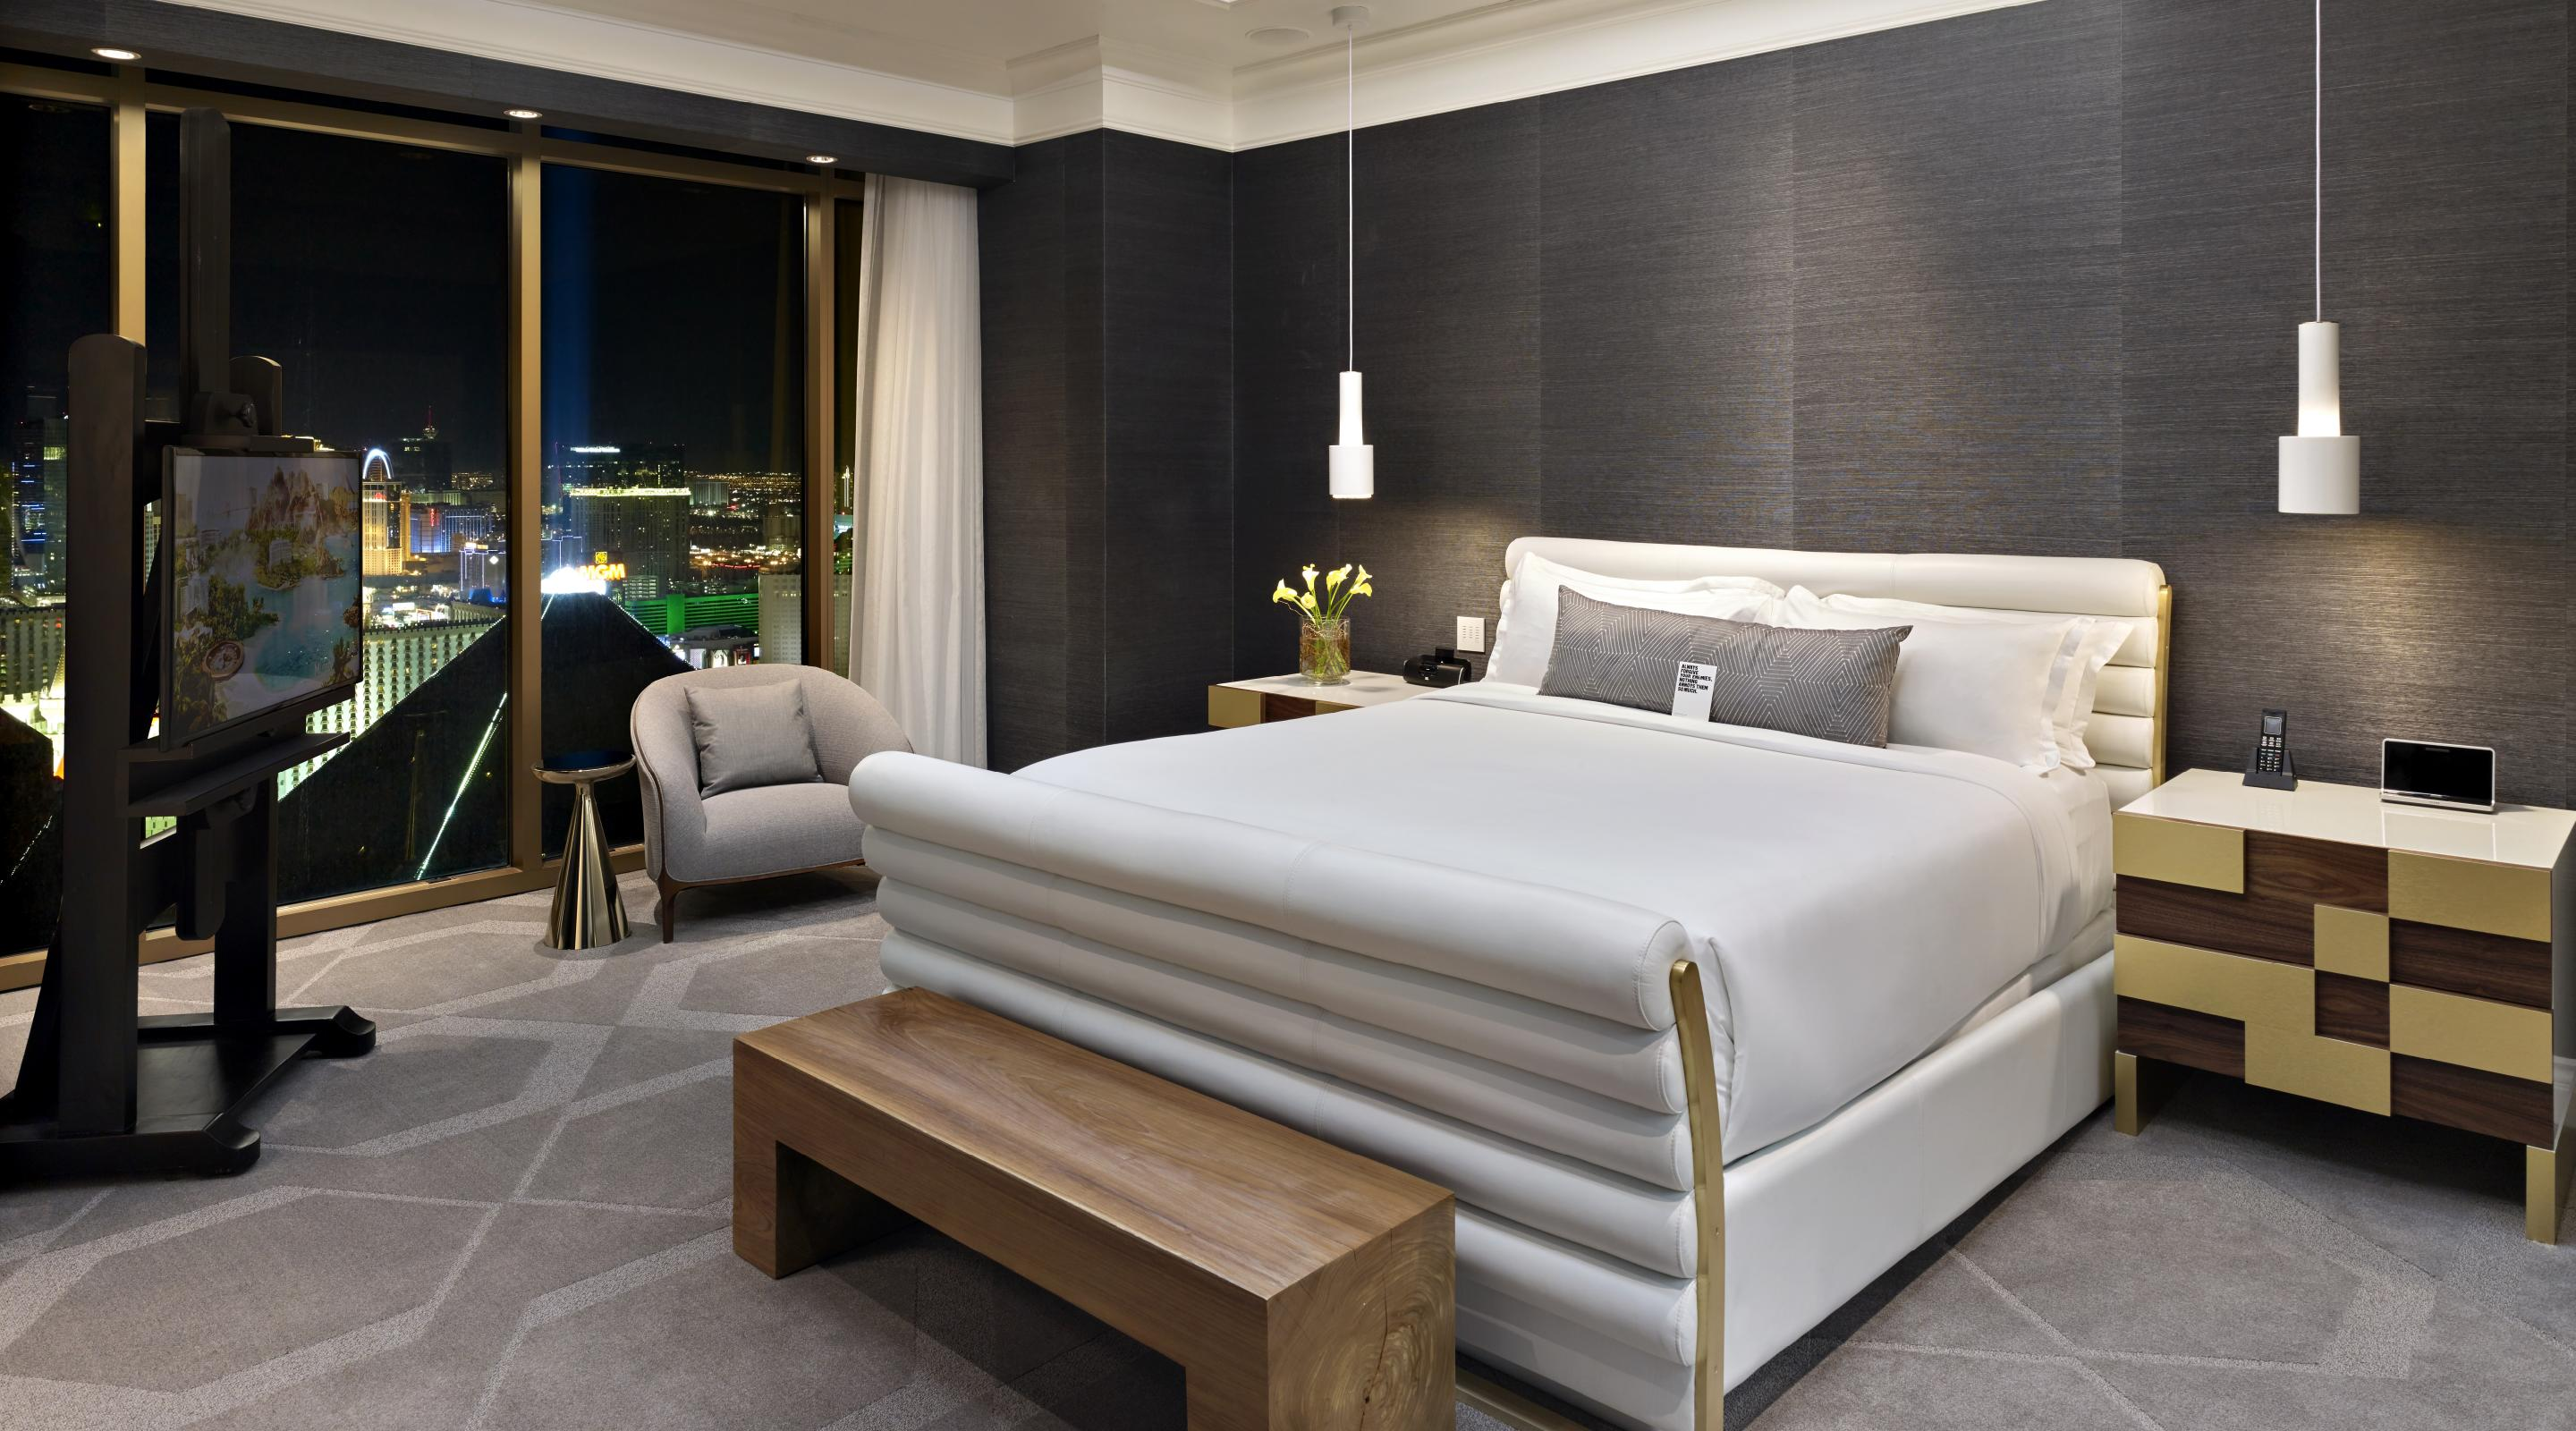 One of the luxurious bedrooms, high above it all.